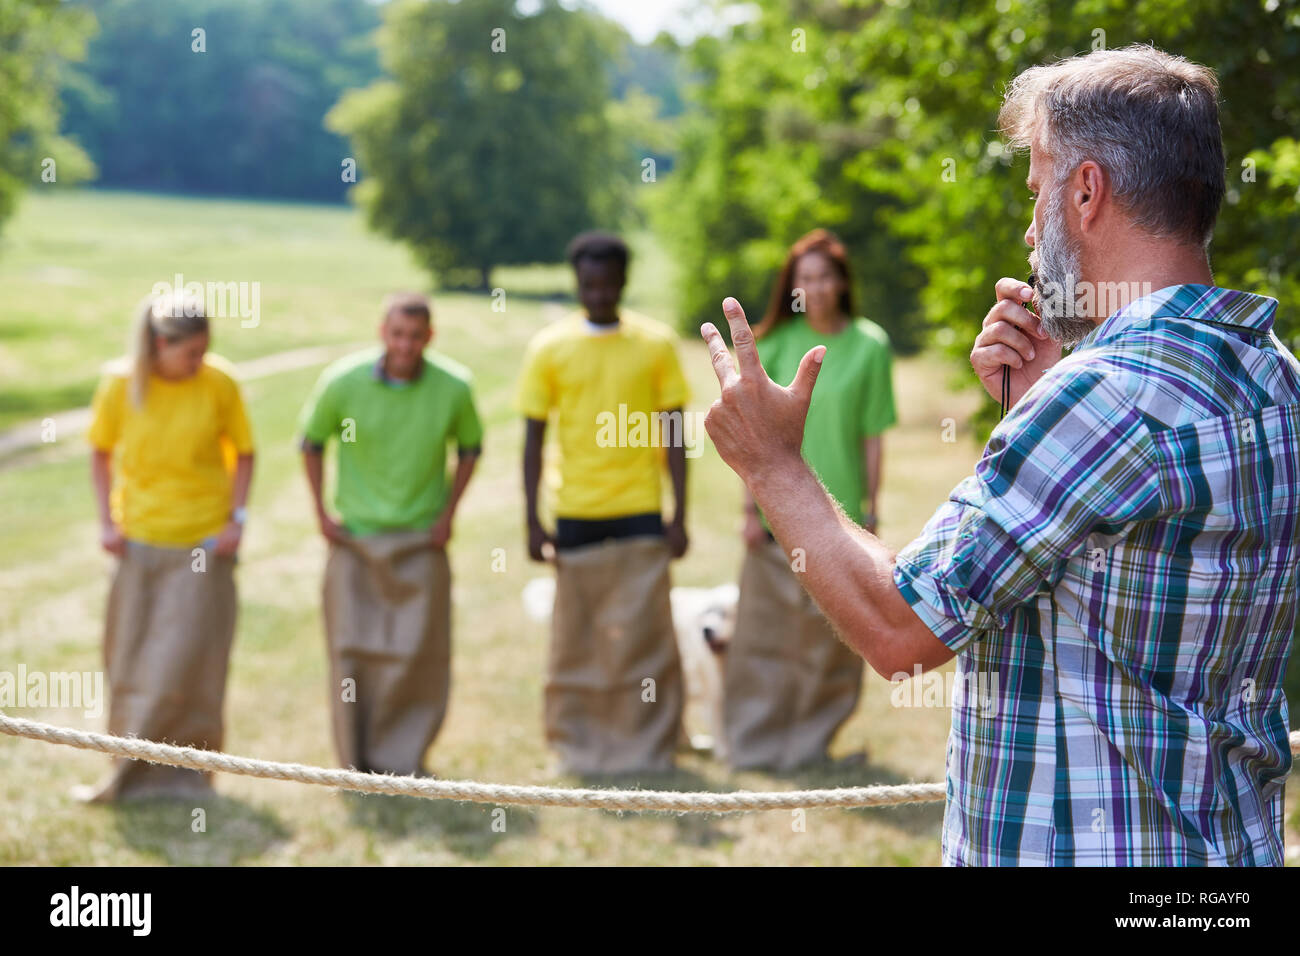 Group at the start of the sack race competition as a team building event - Stock Image